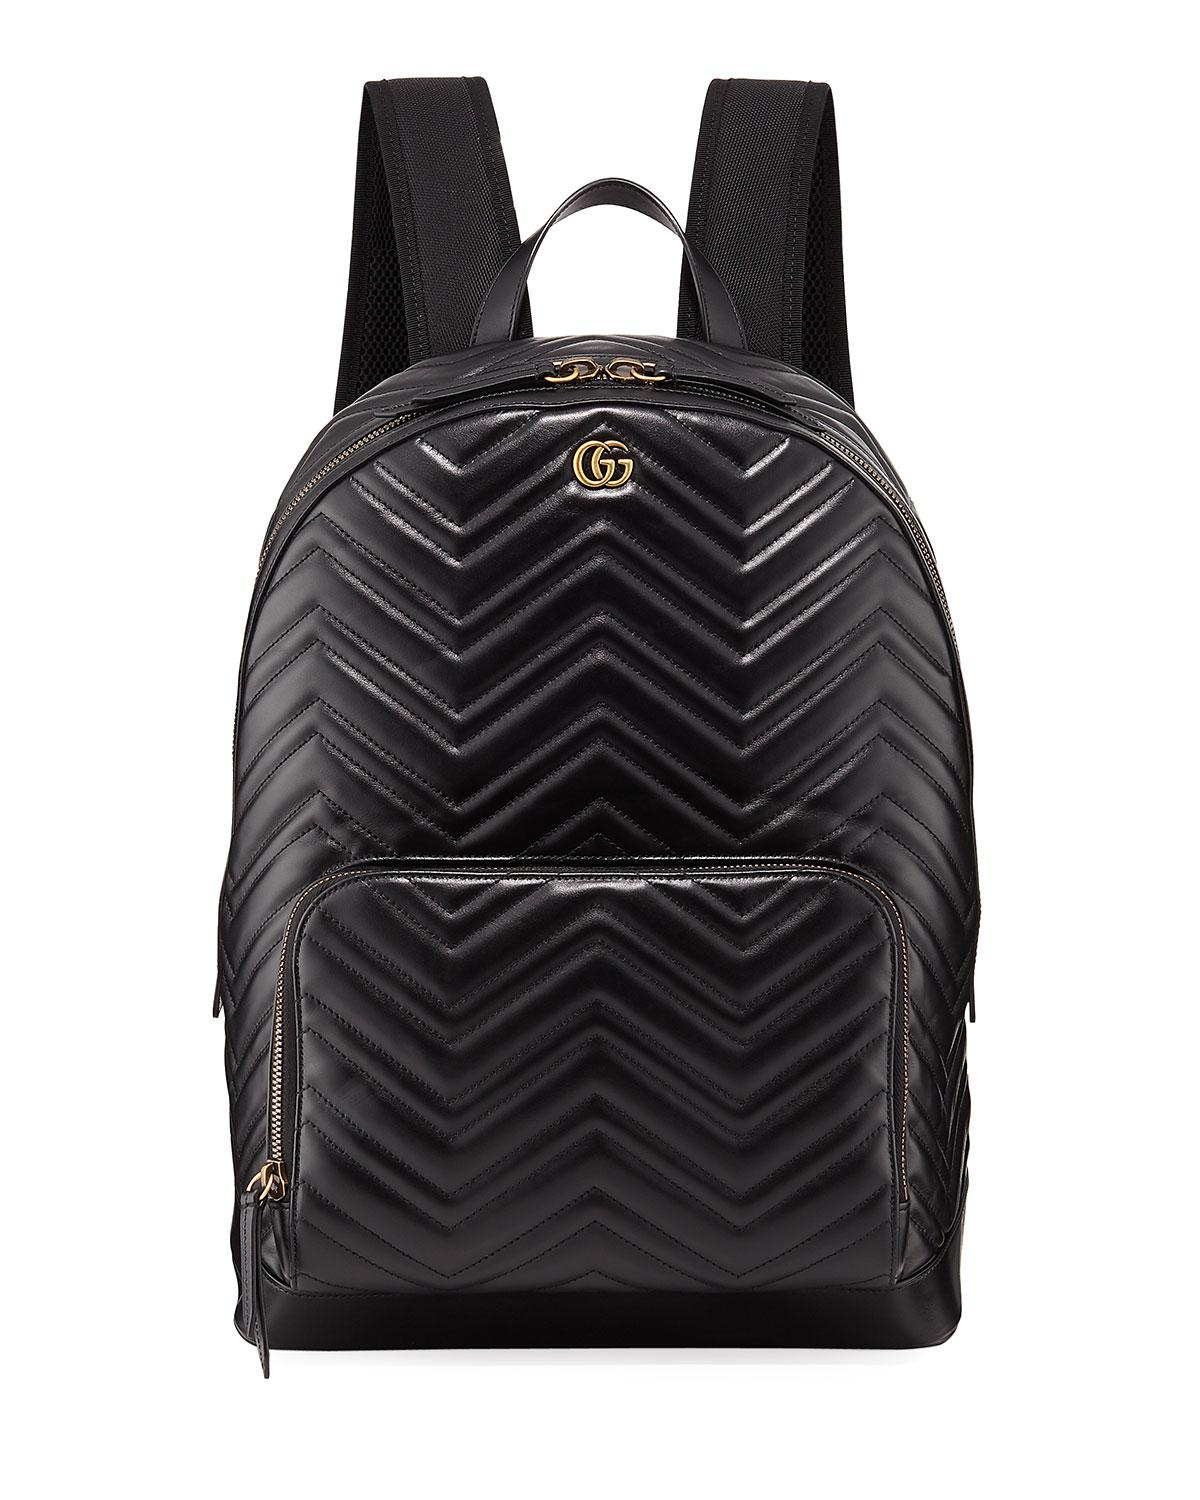 1fd62e8c9dd1 Lyst - Gucci Men s GG Marmont Quilted Leather Backpack in Black